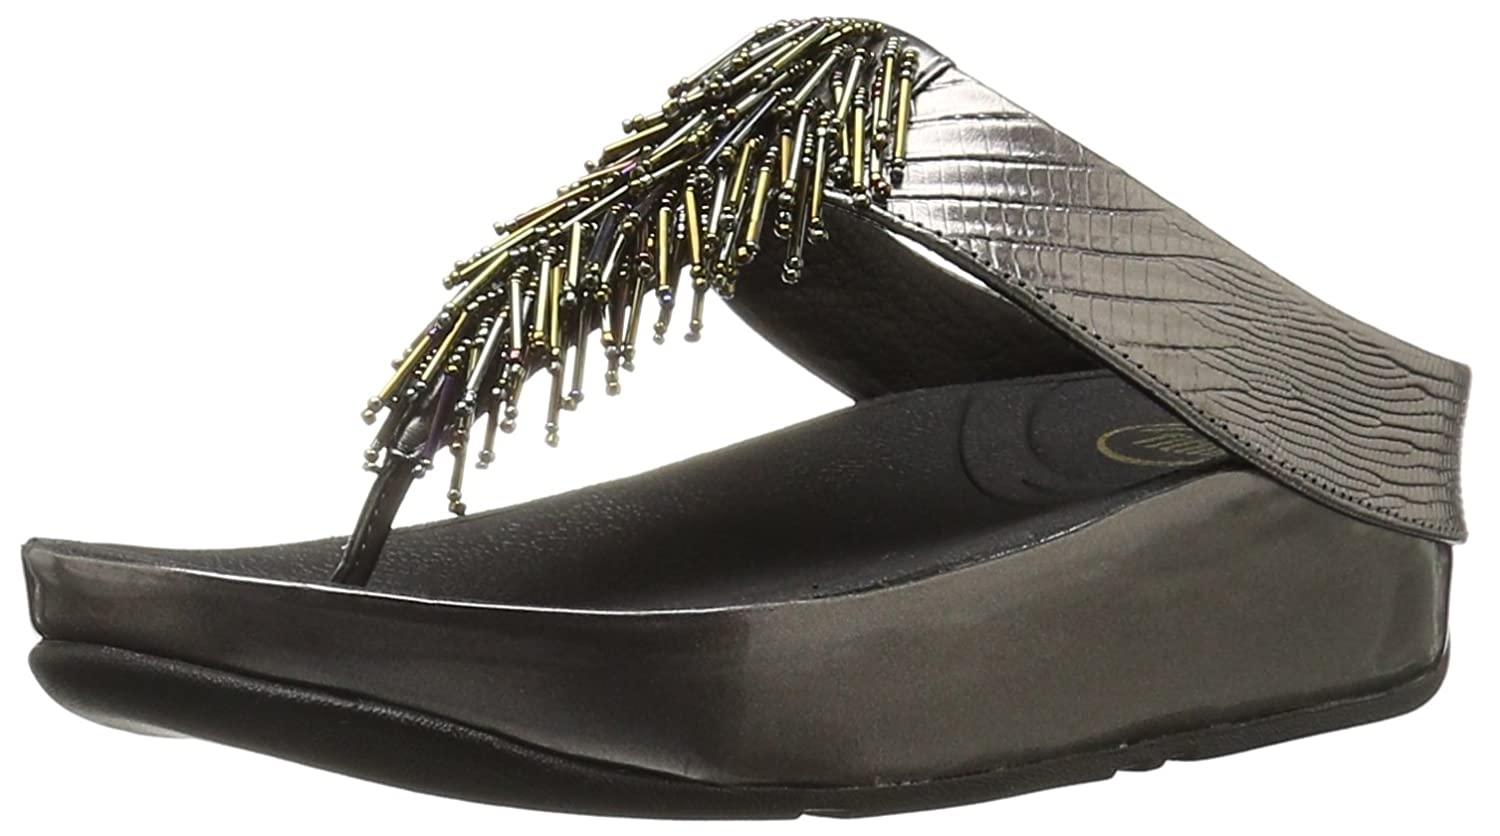 6600fd7909e0d Fitflop Women Cha Cha T-Bar Sandals  Amazon.co.uk  Shoes   Bags